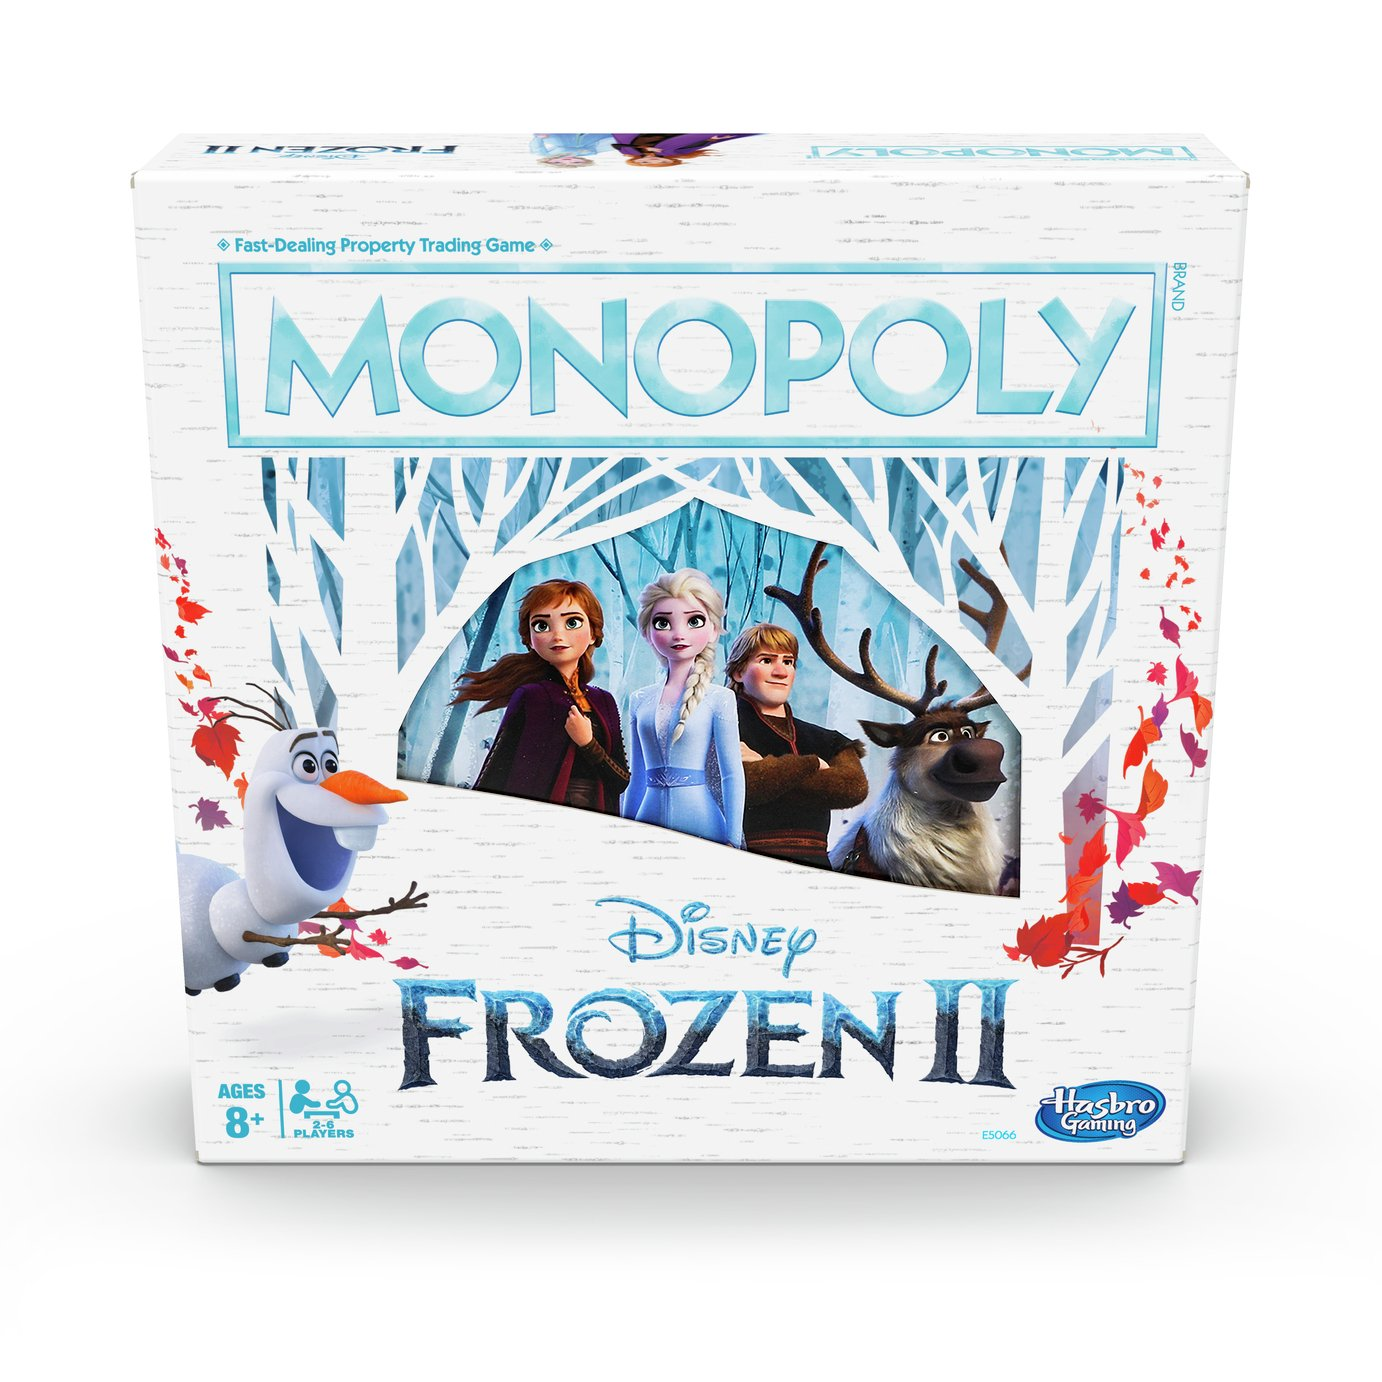 Monopoly Disney Frozen 2 Edition Board Game by Hasbro Gaming